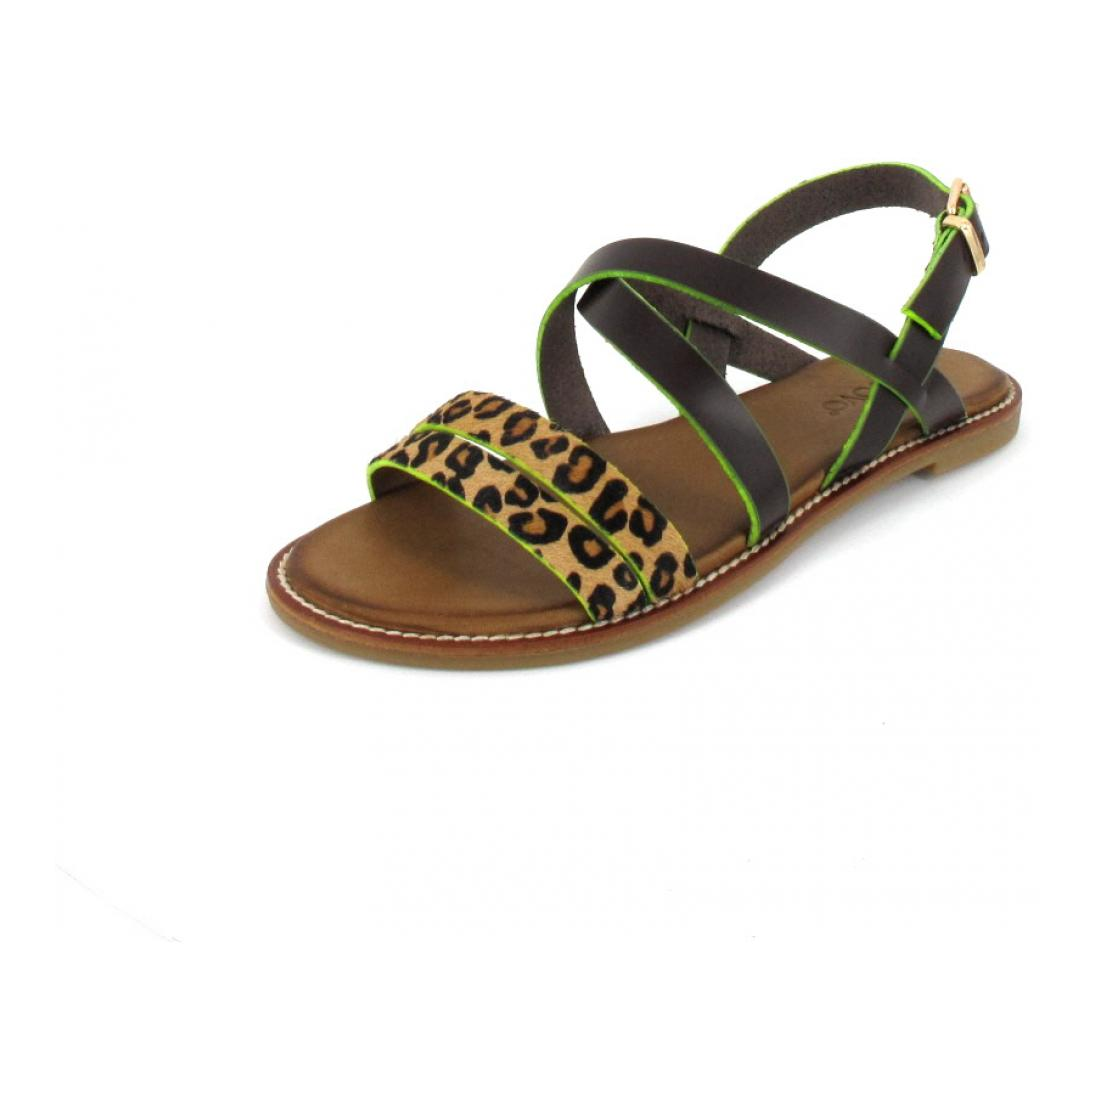 Inuovo Sandale Sandals Leo-Brown-Neon Ye